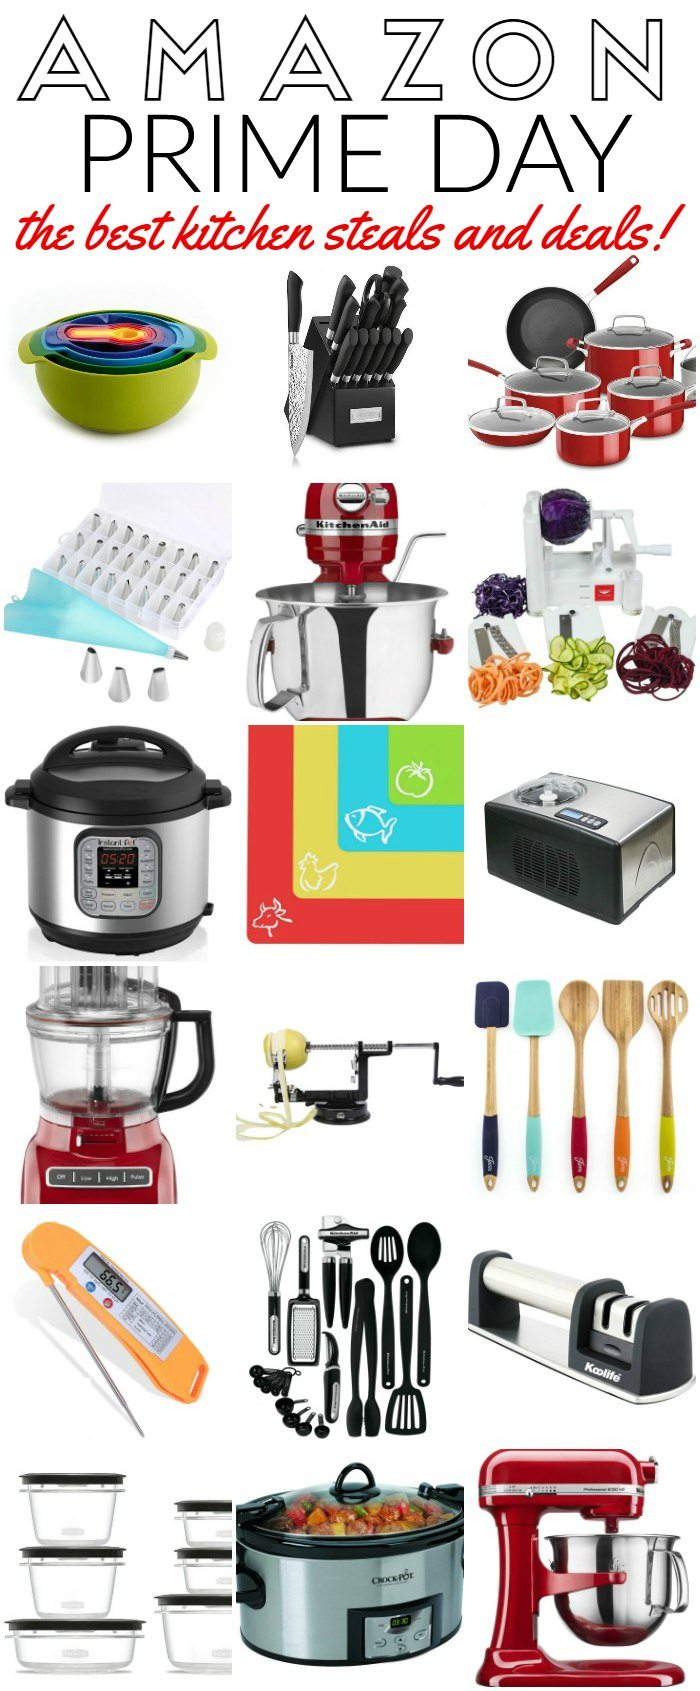 Amazon Prime Day The Best Kitchen Deals Food Folks